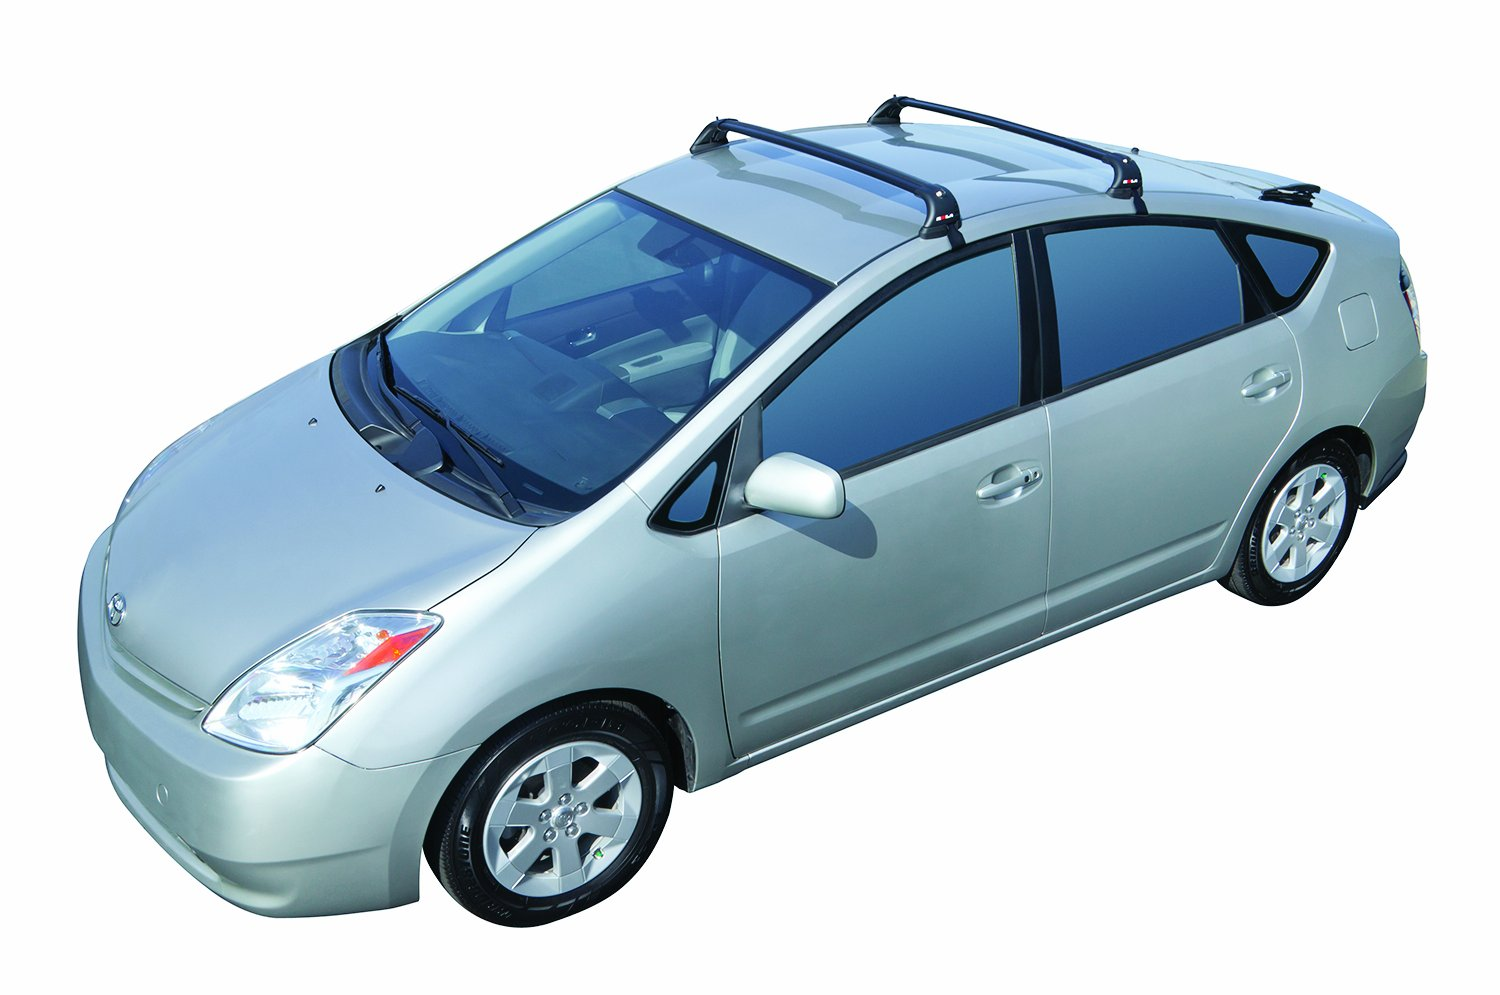 Amazon.com: ROLA 59728 Removable Mount GTX Series Roof Rack For Toyota Prius:  Automotive